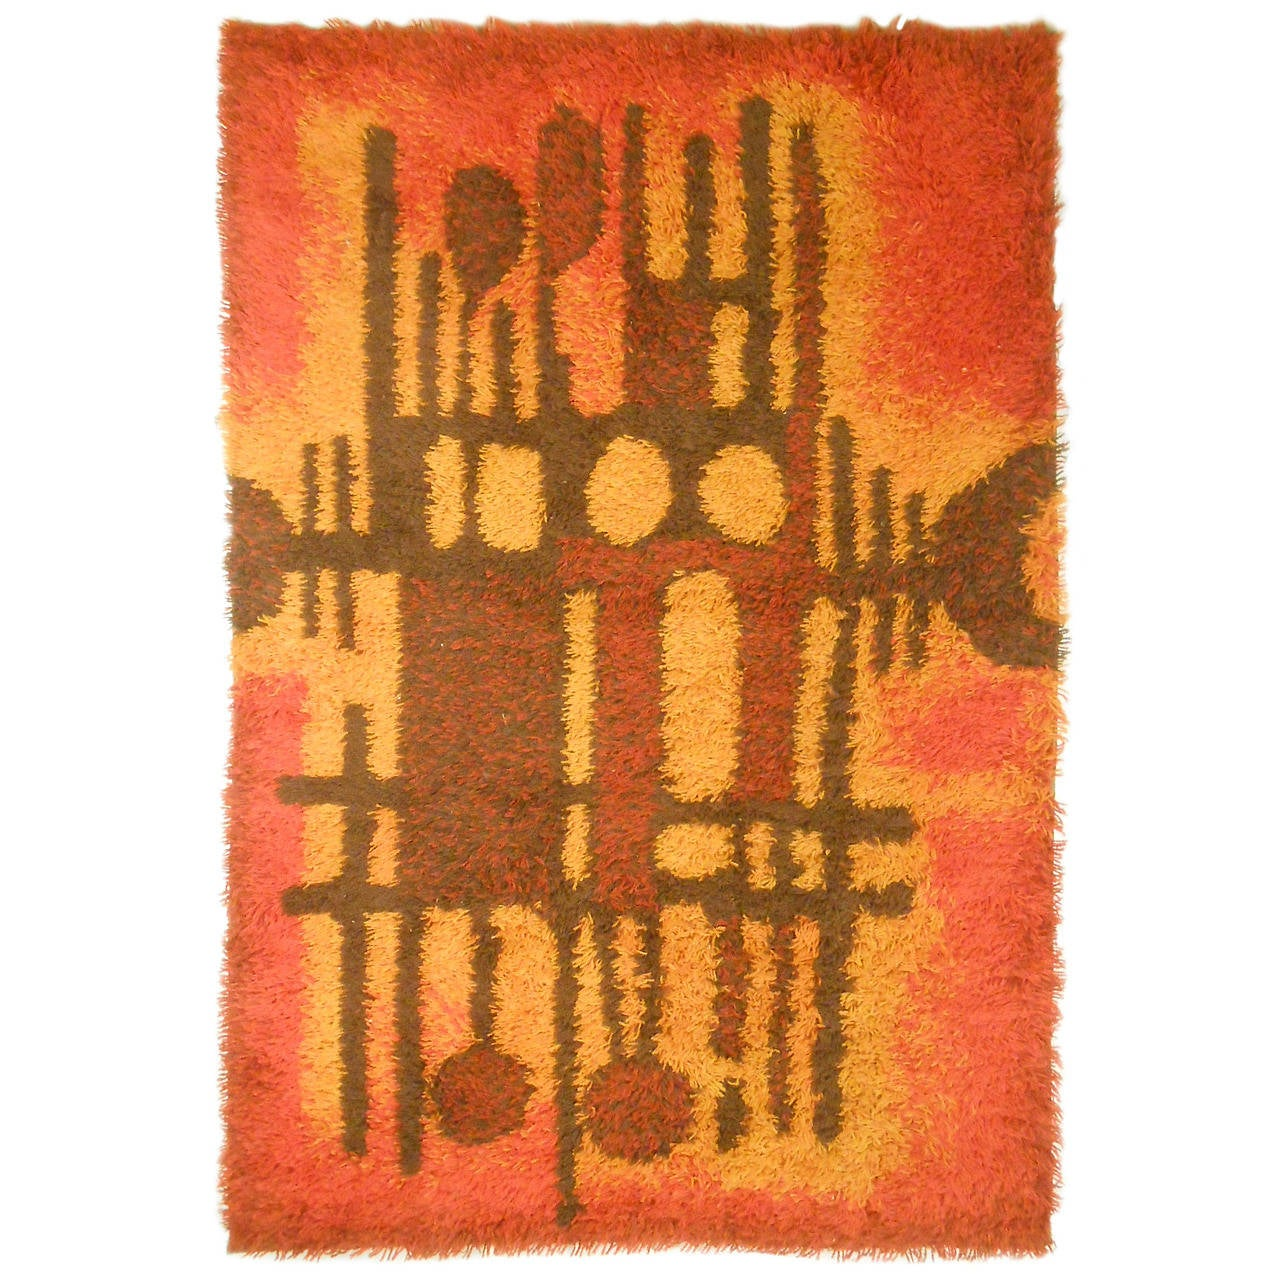 Mid Century Modern Area Rug By Ege Rya For Sale At 1stdibs